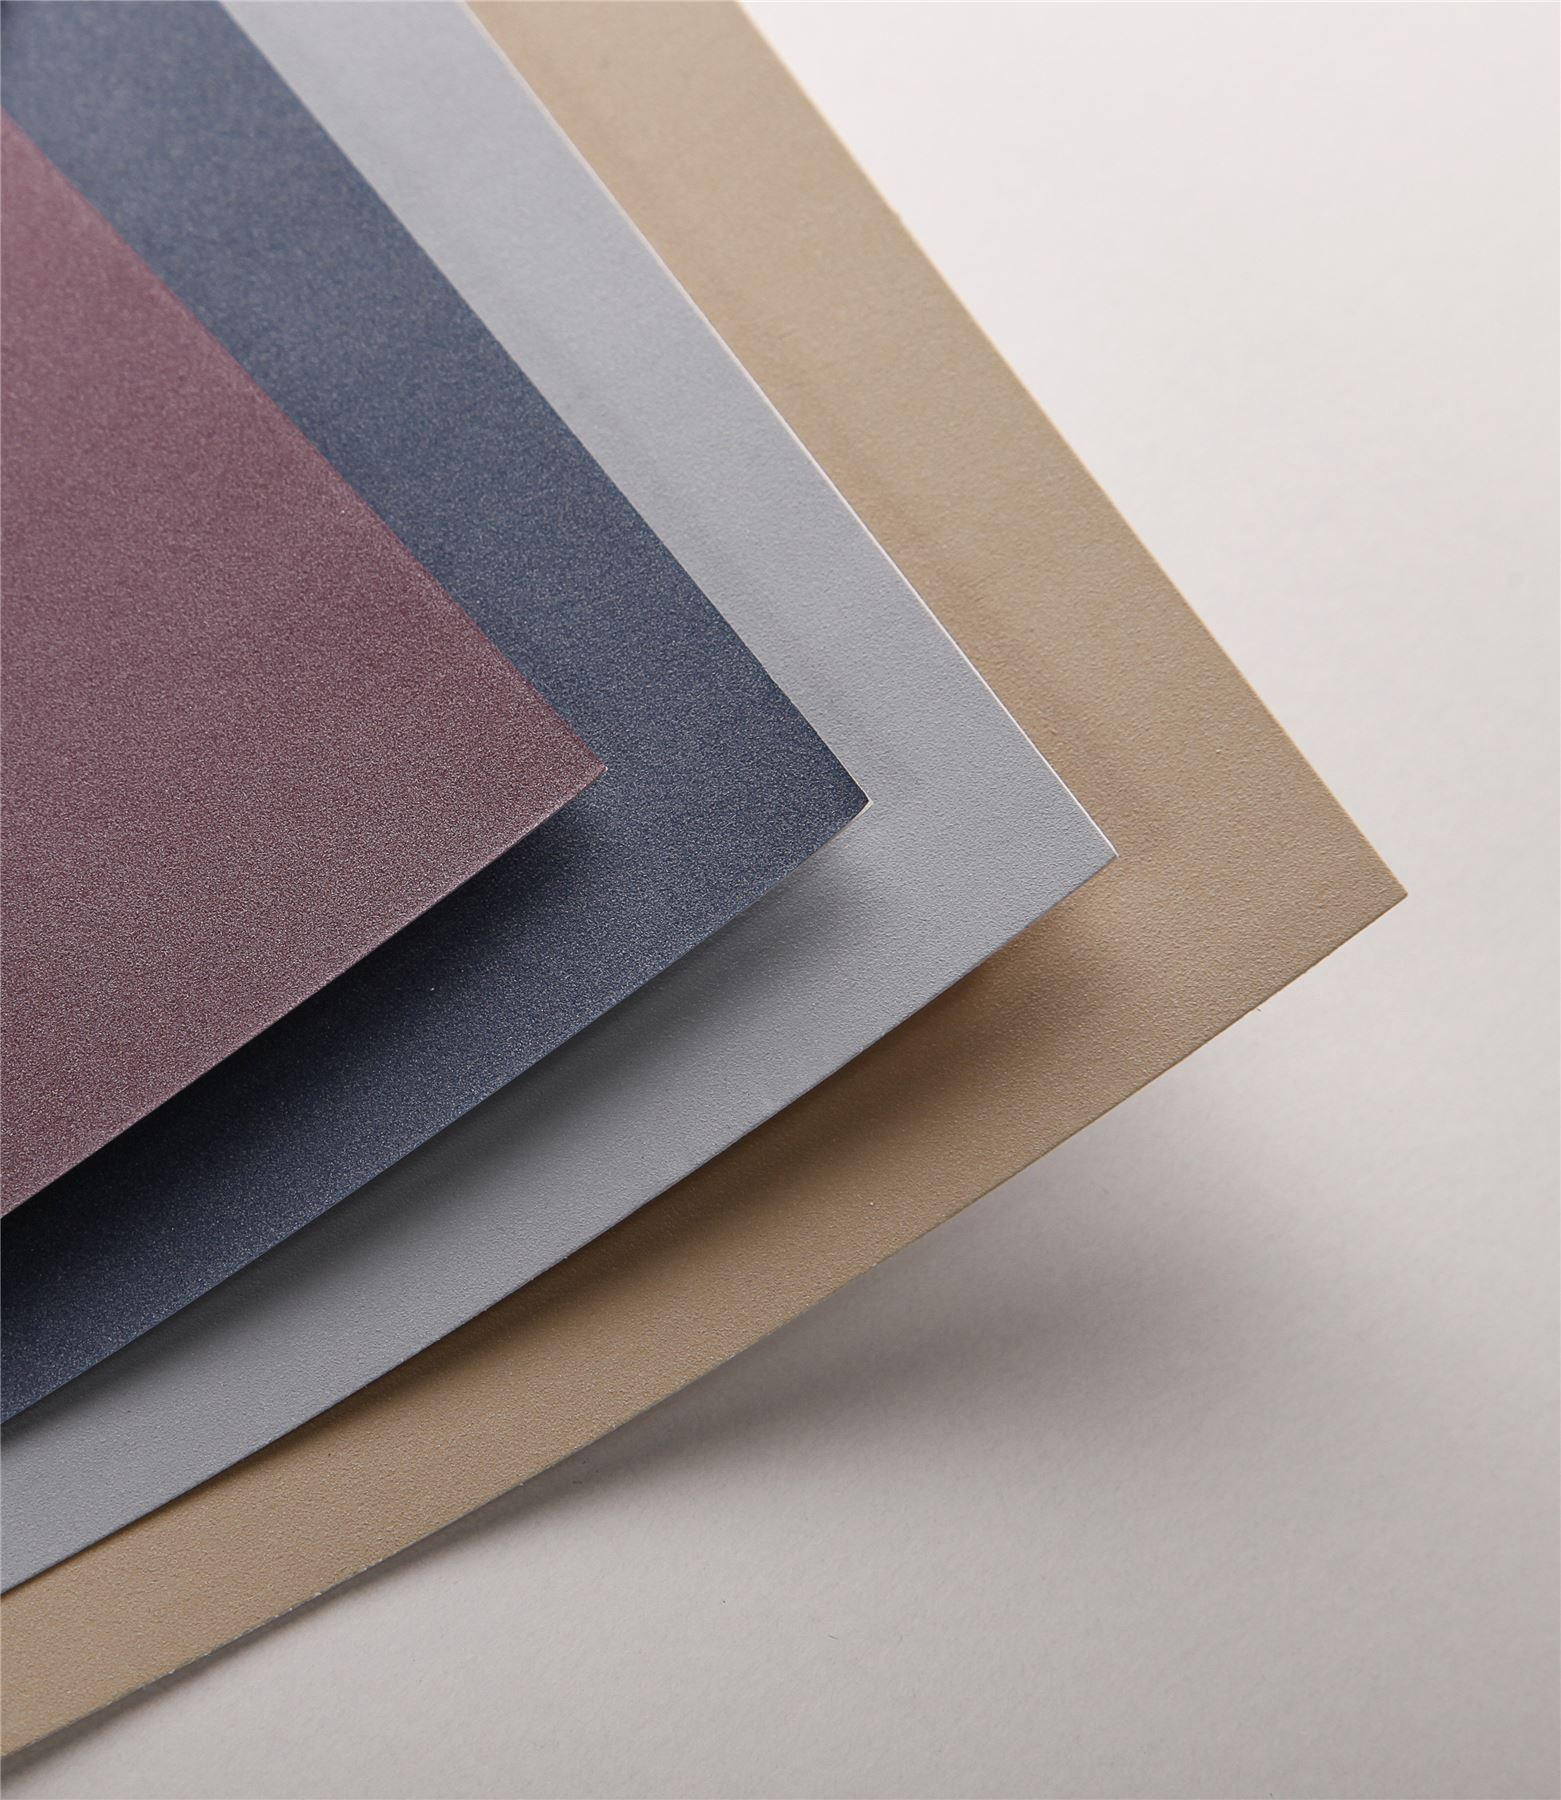 Clairefontaine-PastelMat-Pads-6-pad-choices-in-assorted-colours-amp-sizes thumbnail 24